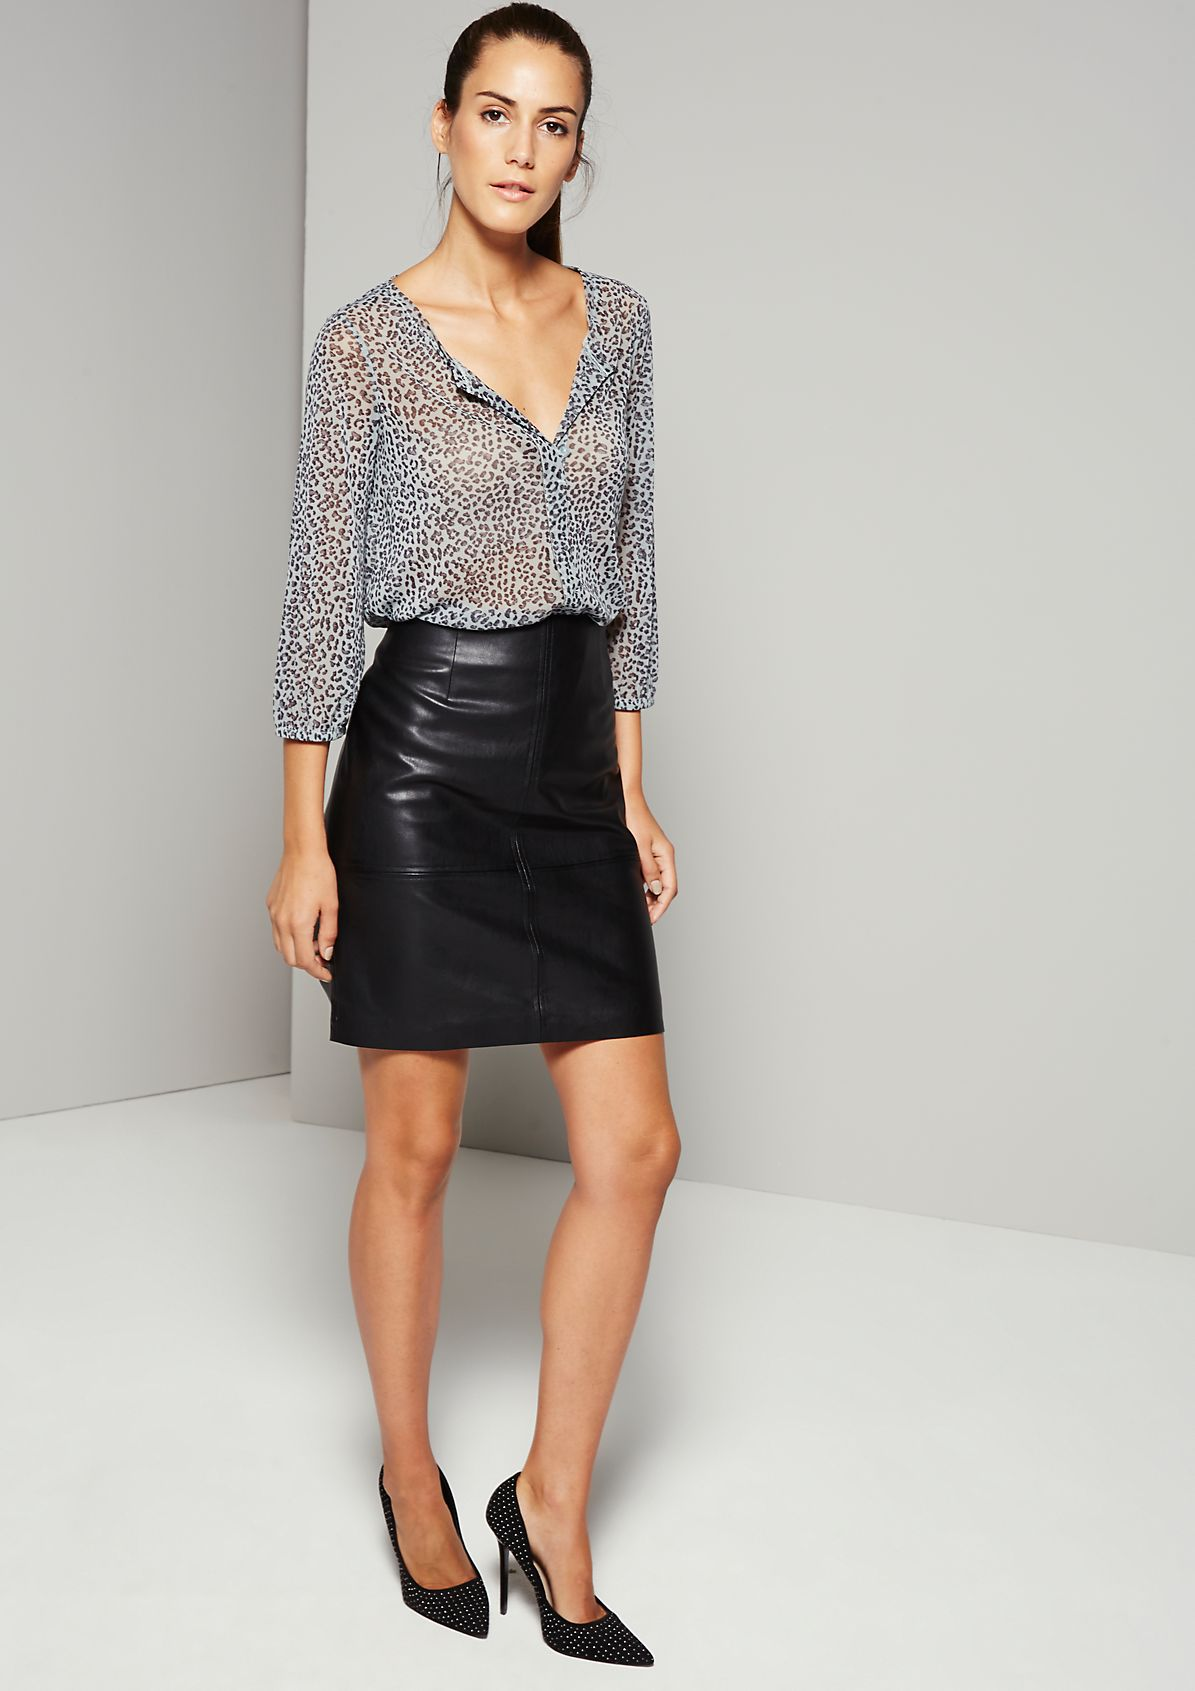 Delicate mesh blouse with an exciting all-over pattern from s.Oliver